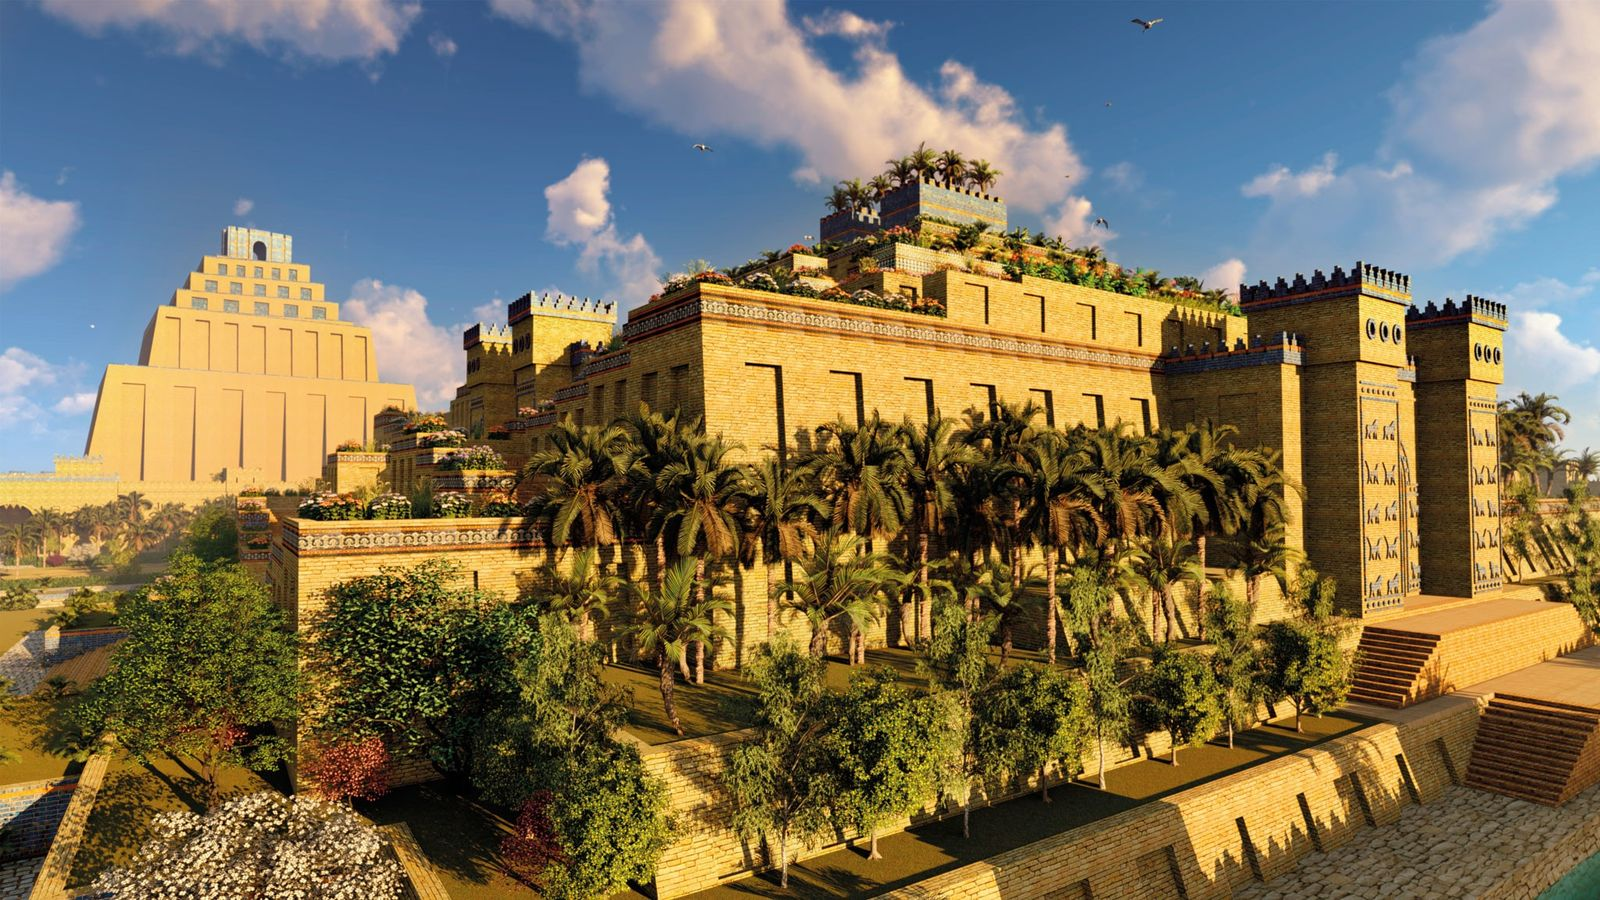 With its terracing crammed with trees and vegetation, this artistic imagining of Babylon's Hanging Gardens takes ...